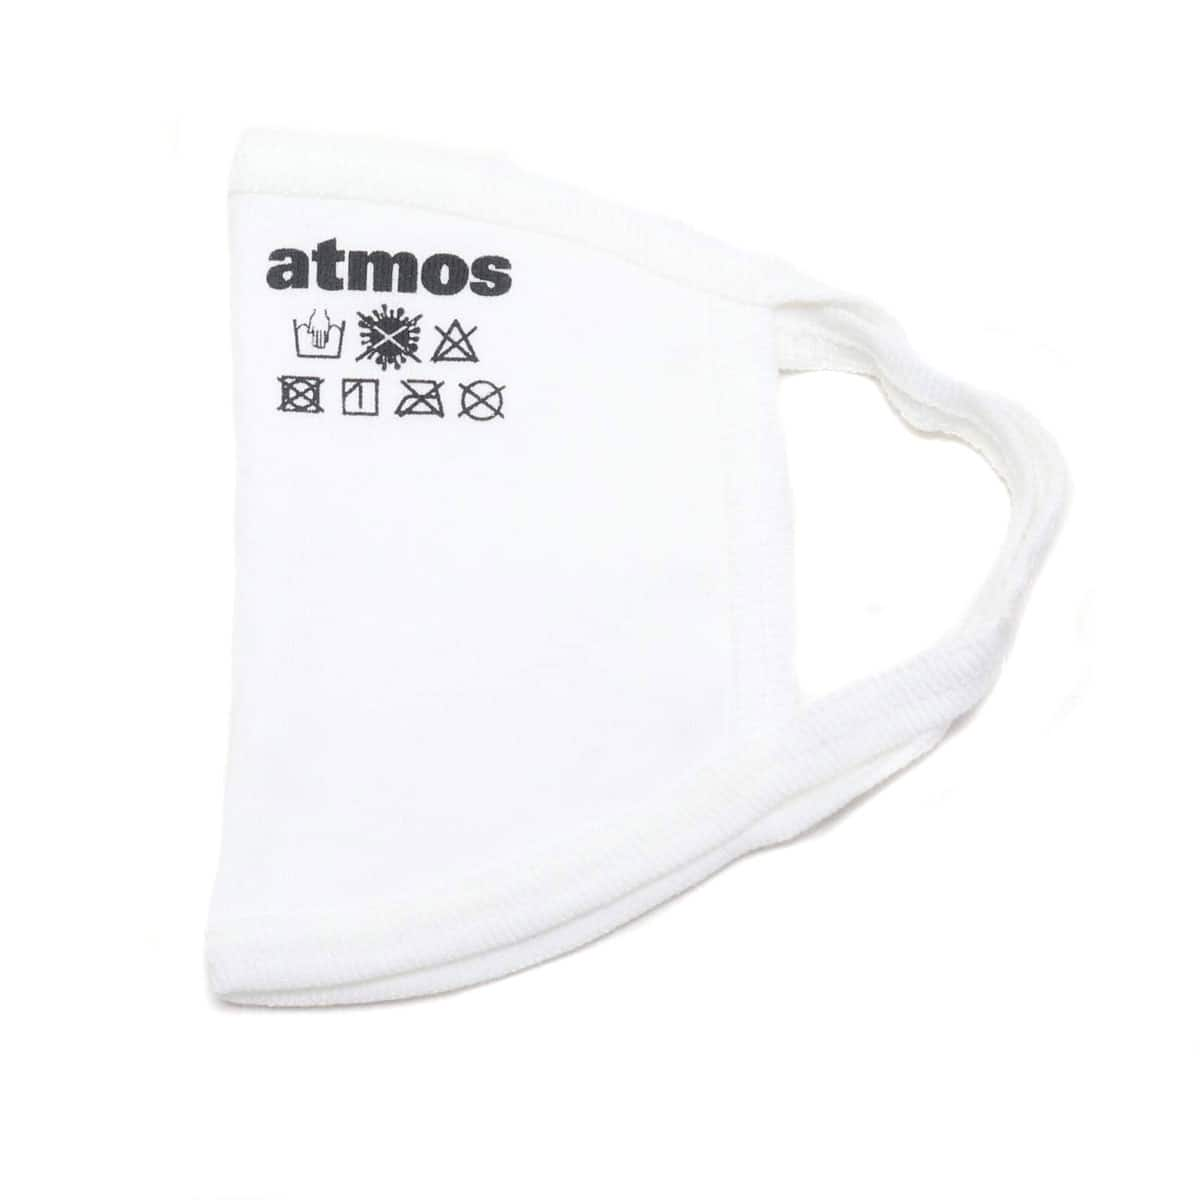 atmos LOGO MASK WHITE 20SP-S_photo_large